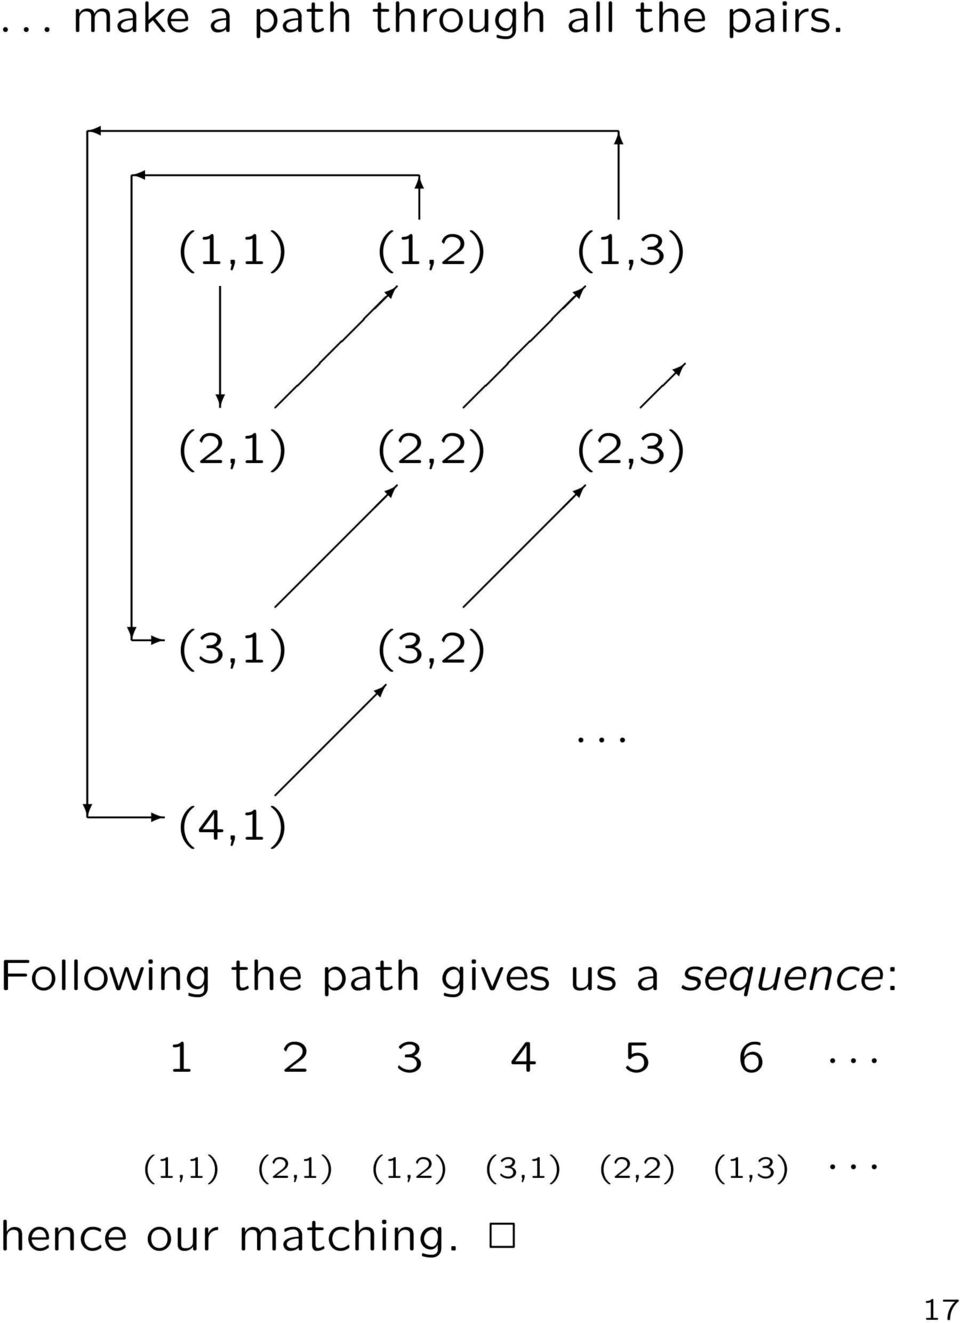 Following the path gives us a sequence: 2 3 4